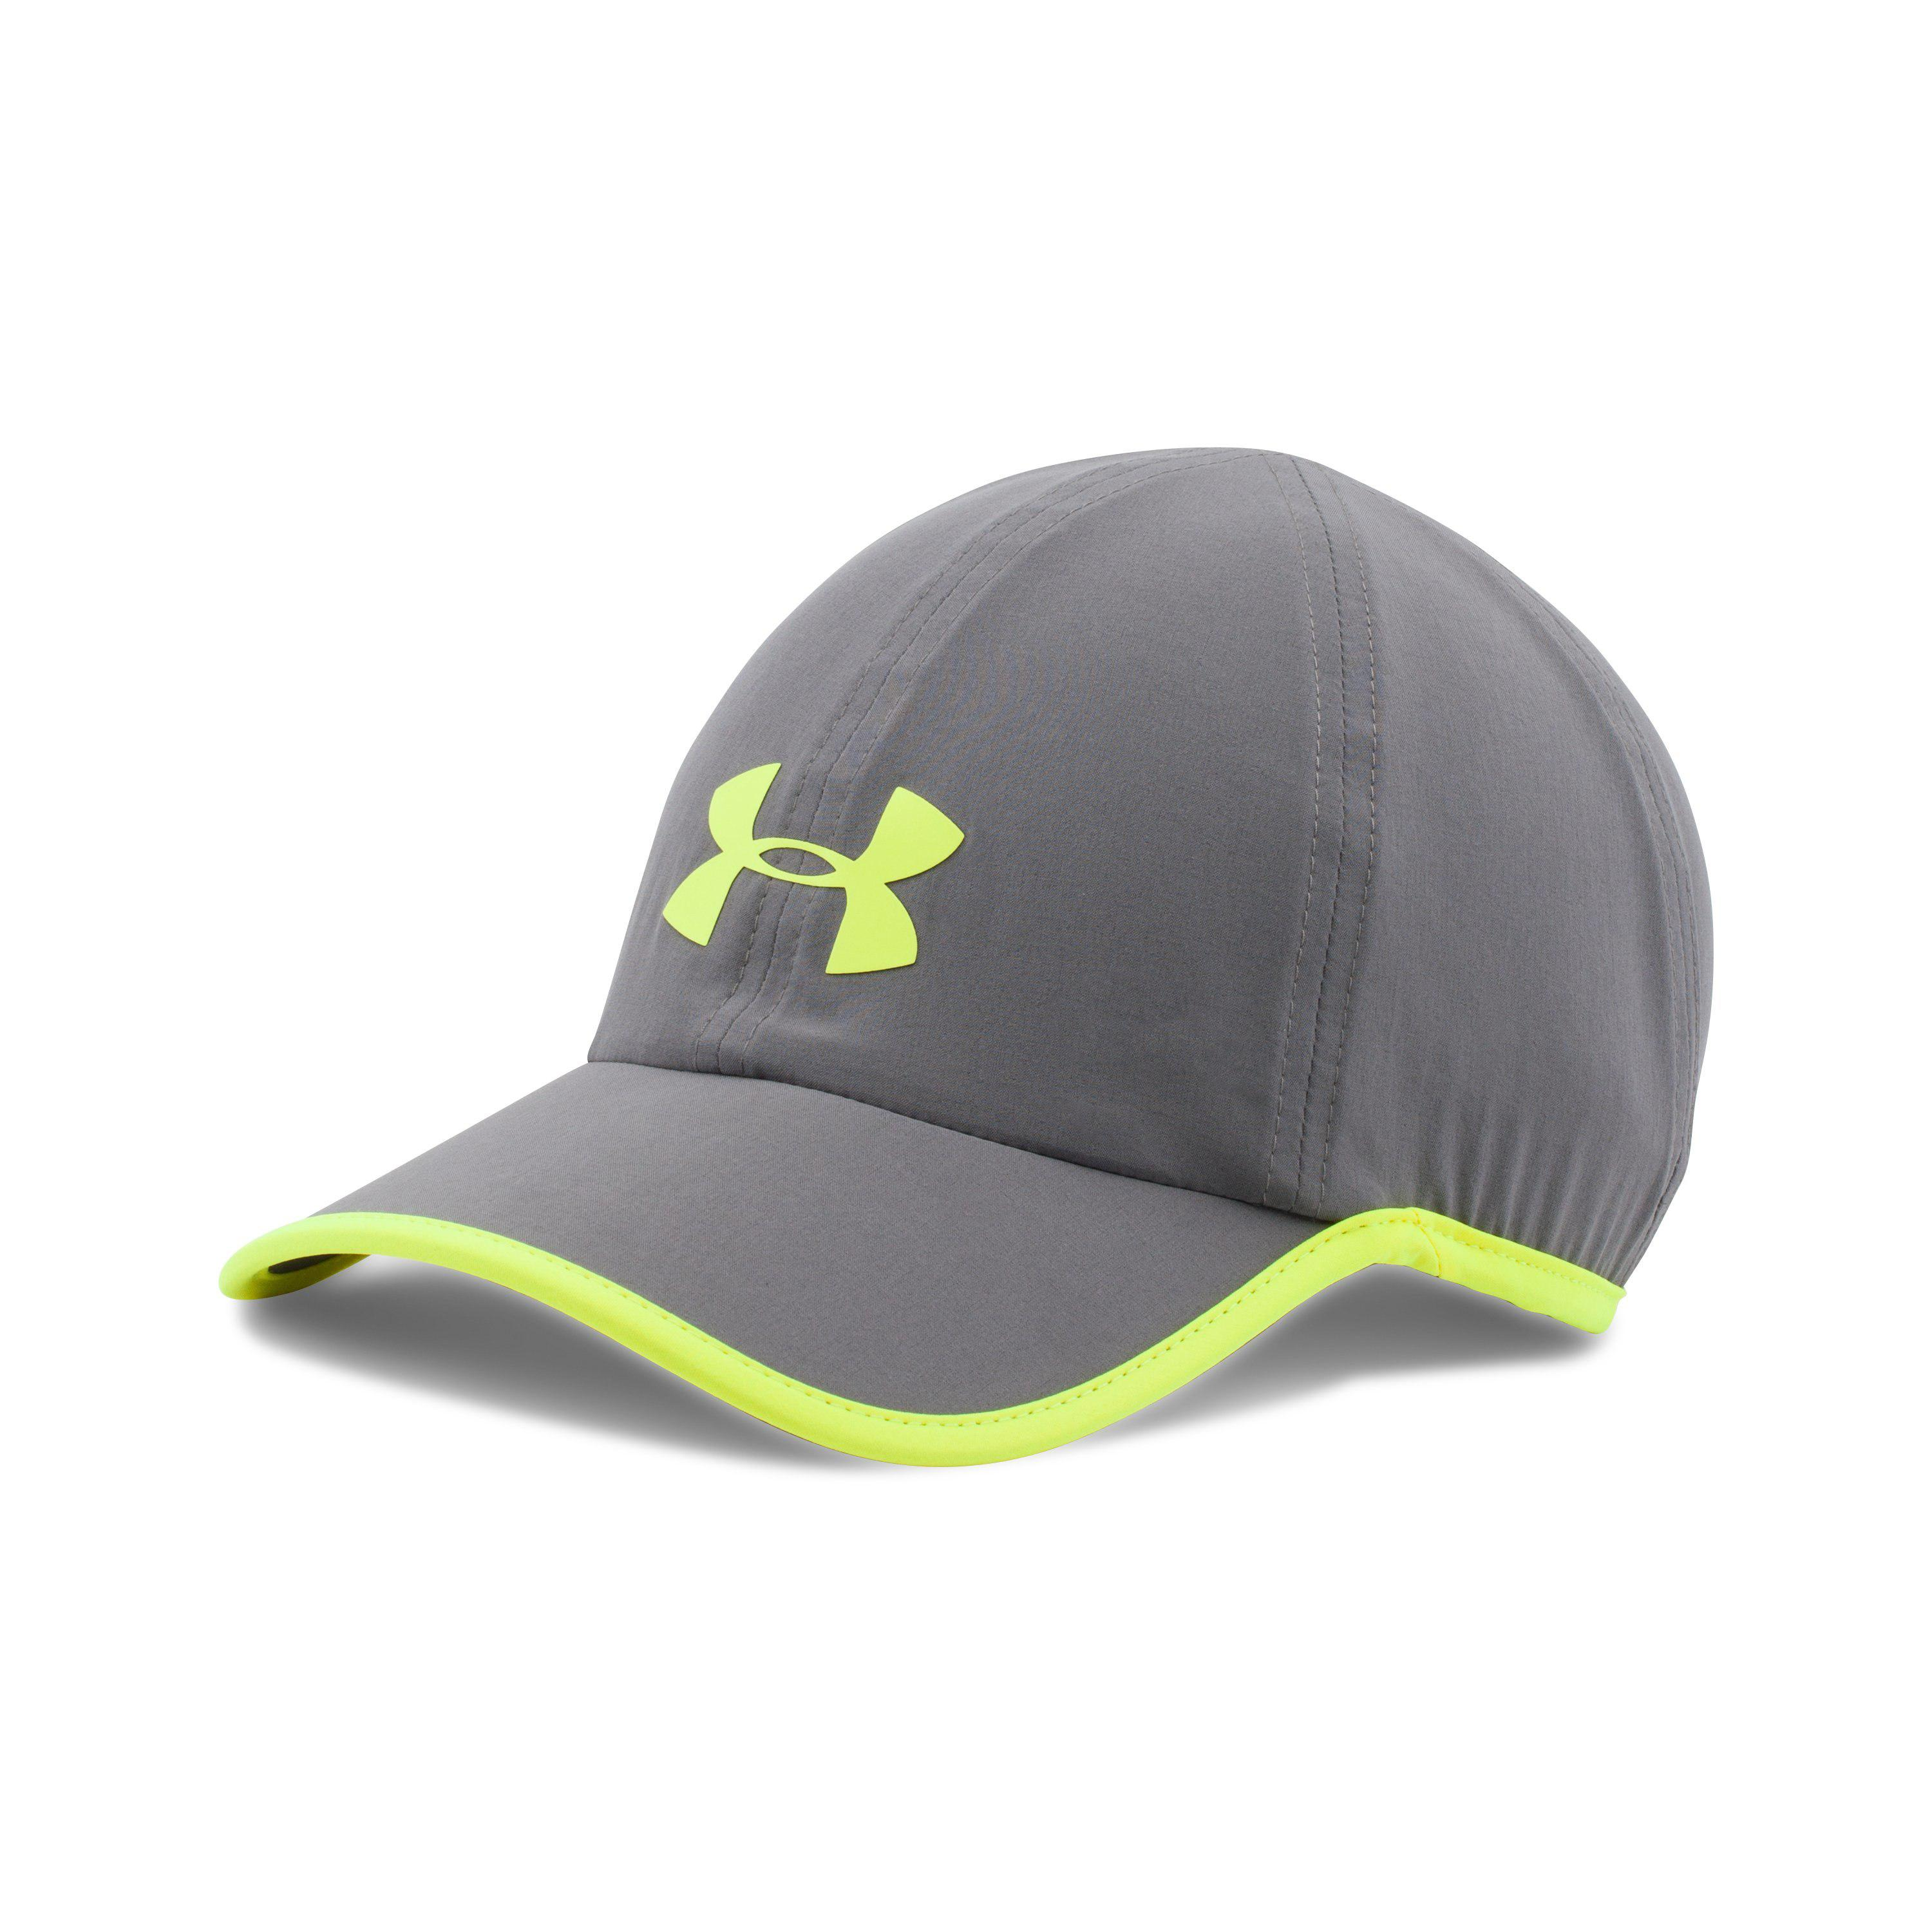 Lyst - Under Armour Men s Ua Run Cap in Gray for Men 36d426c1a